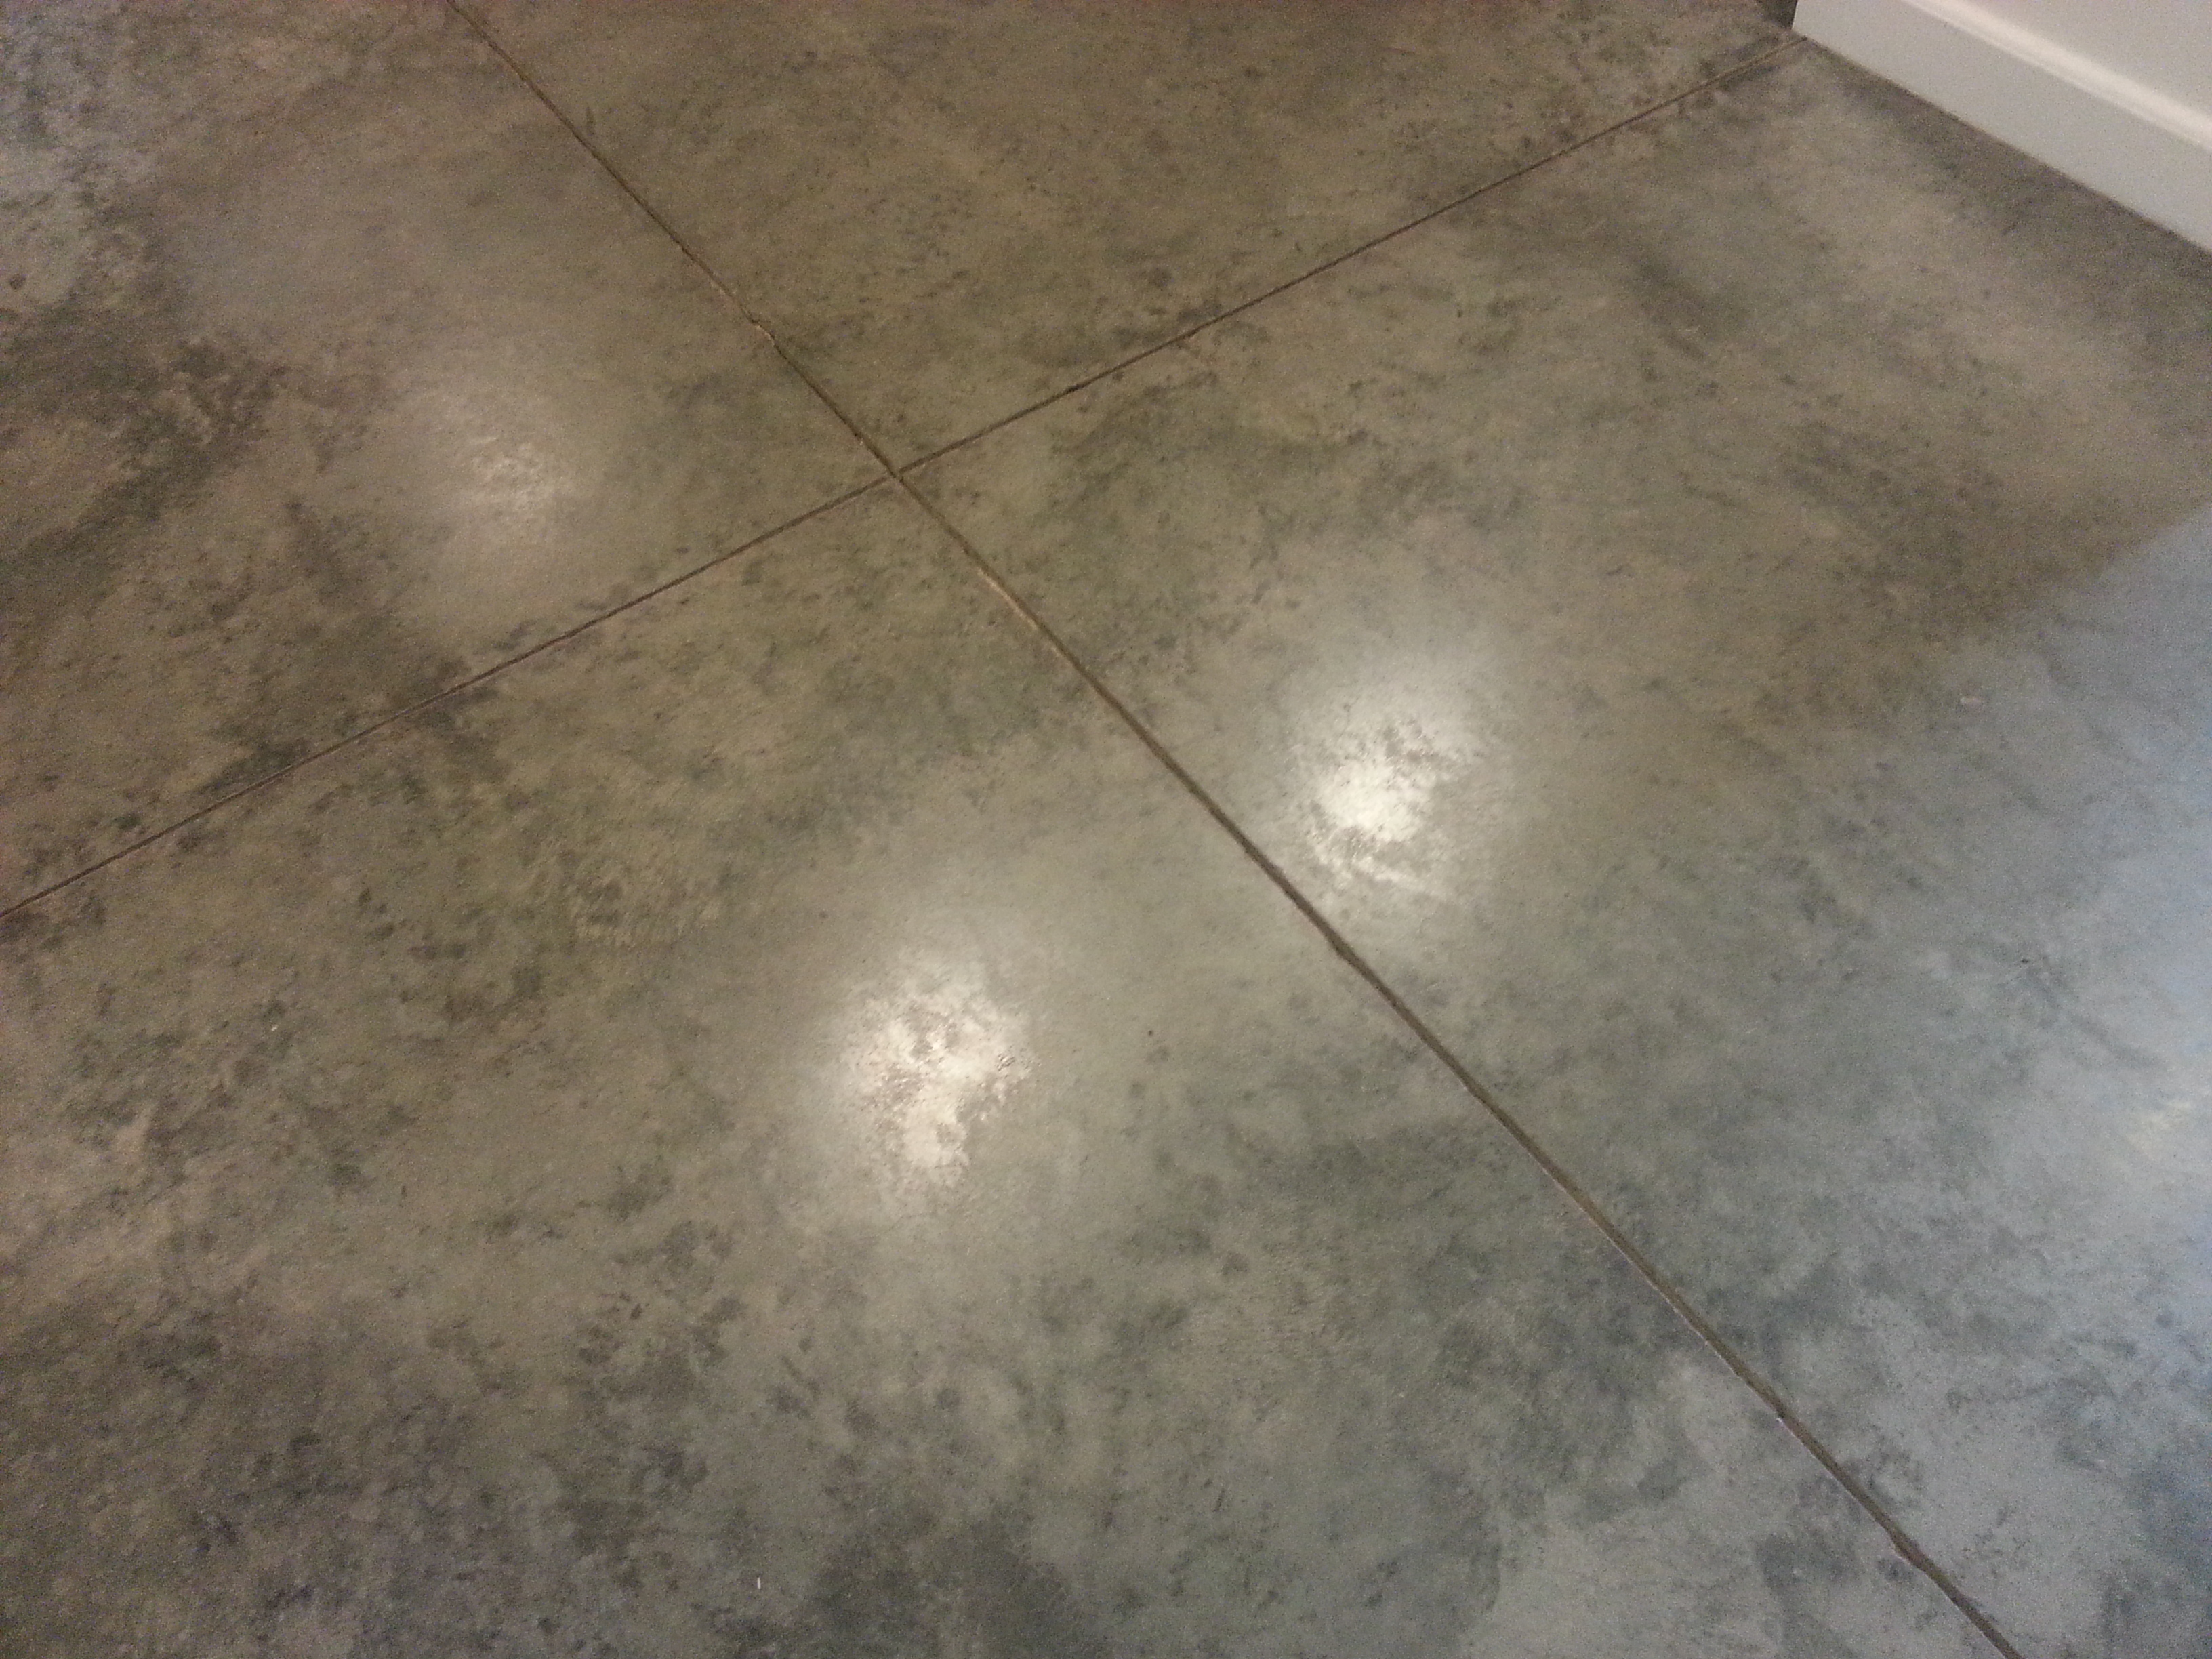 Concrete Floor Saw Cuts Ready For Joint, How To Cut Concrete Flooring